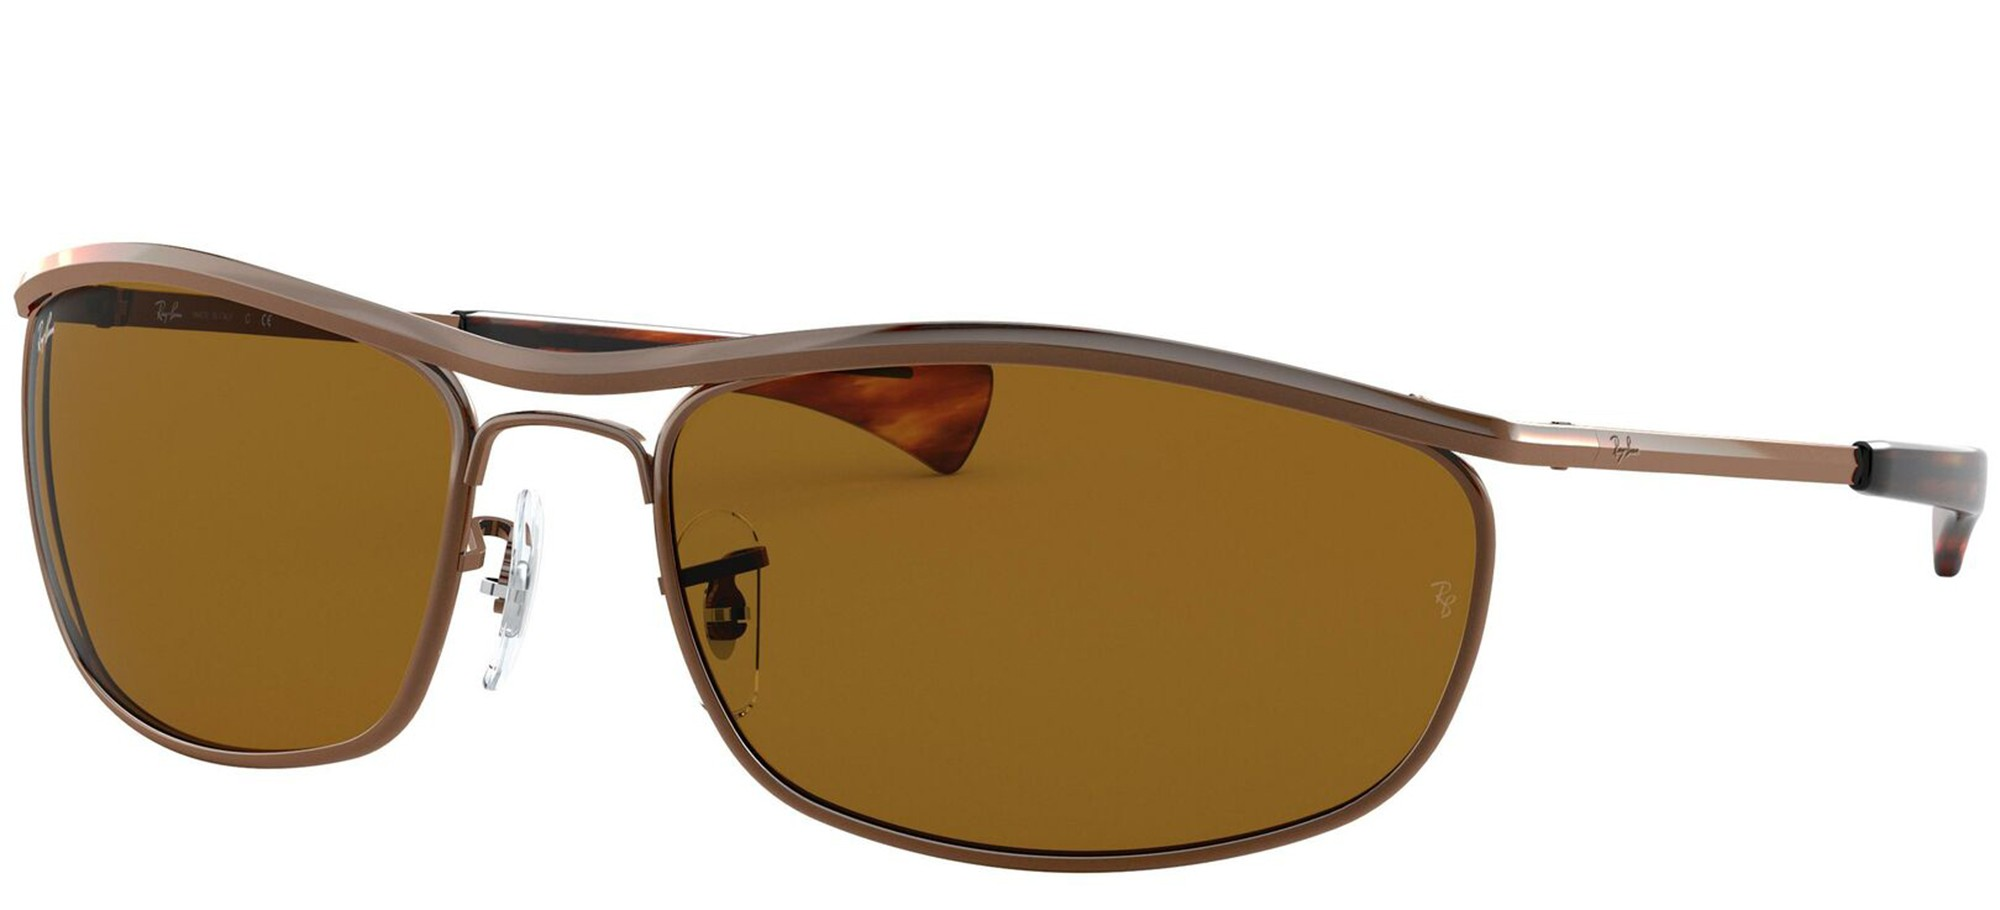 Ray-Ban sunglasses OLYMPIAN I DELUXE RB 3119M